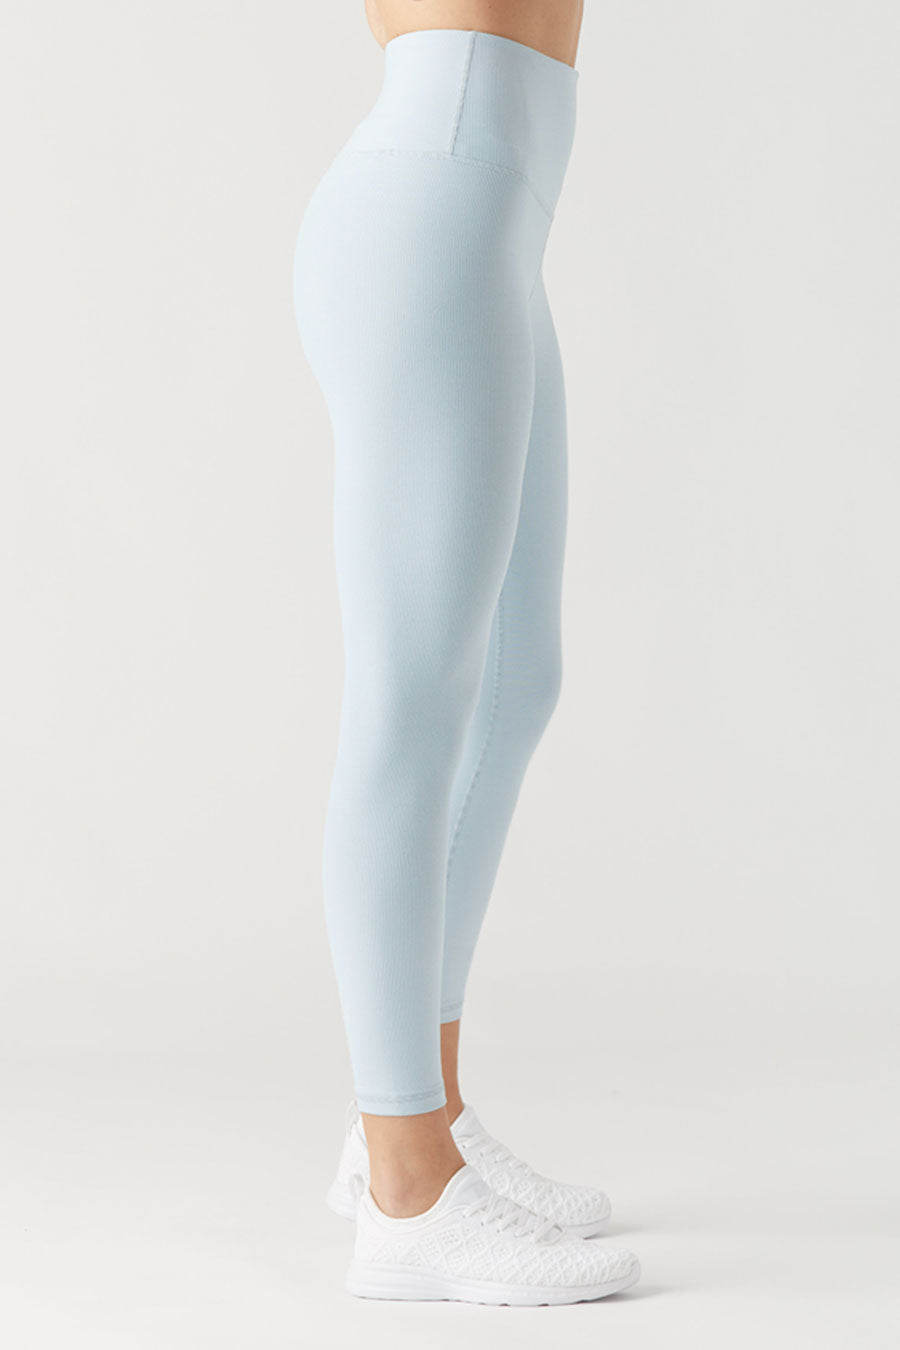 Beam 7/8 Length Legging